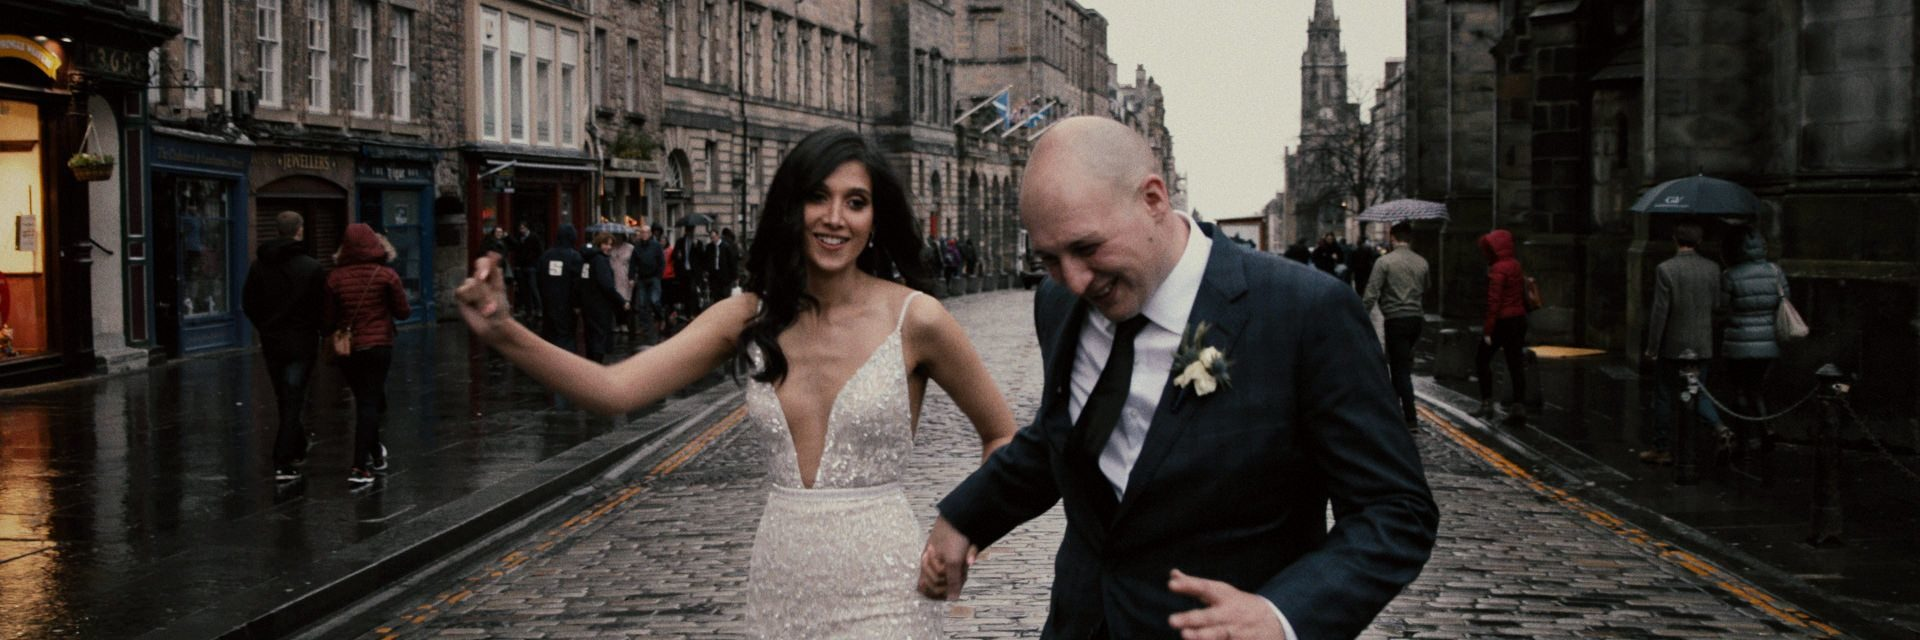 Rhodes-wedding-videographer-cinemate-films-04